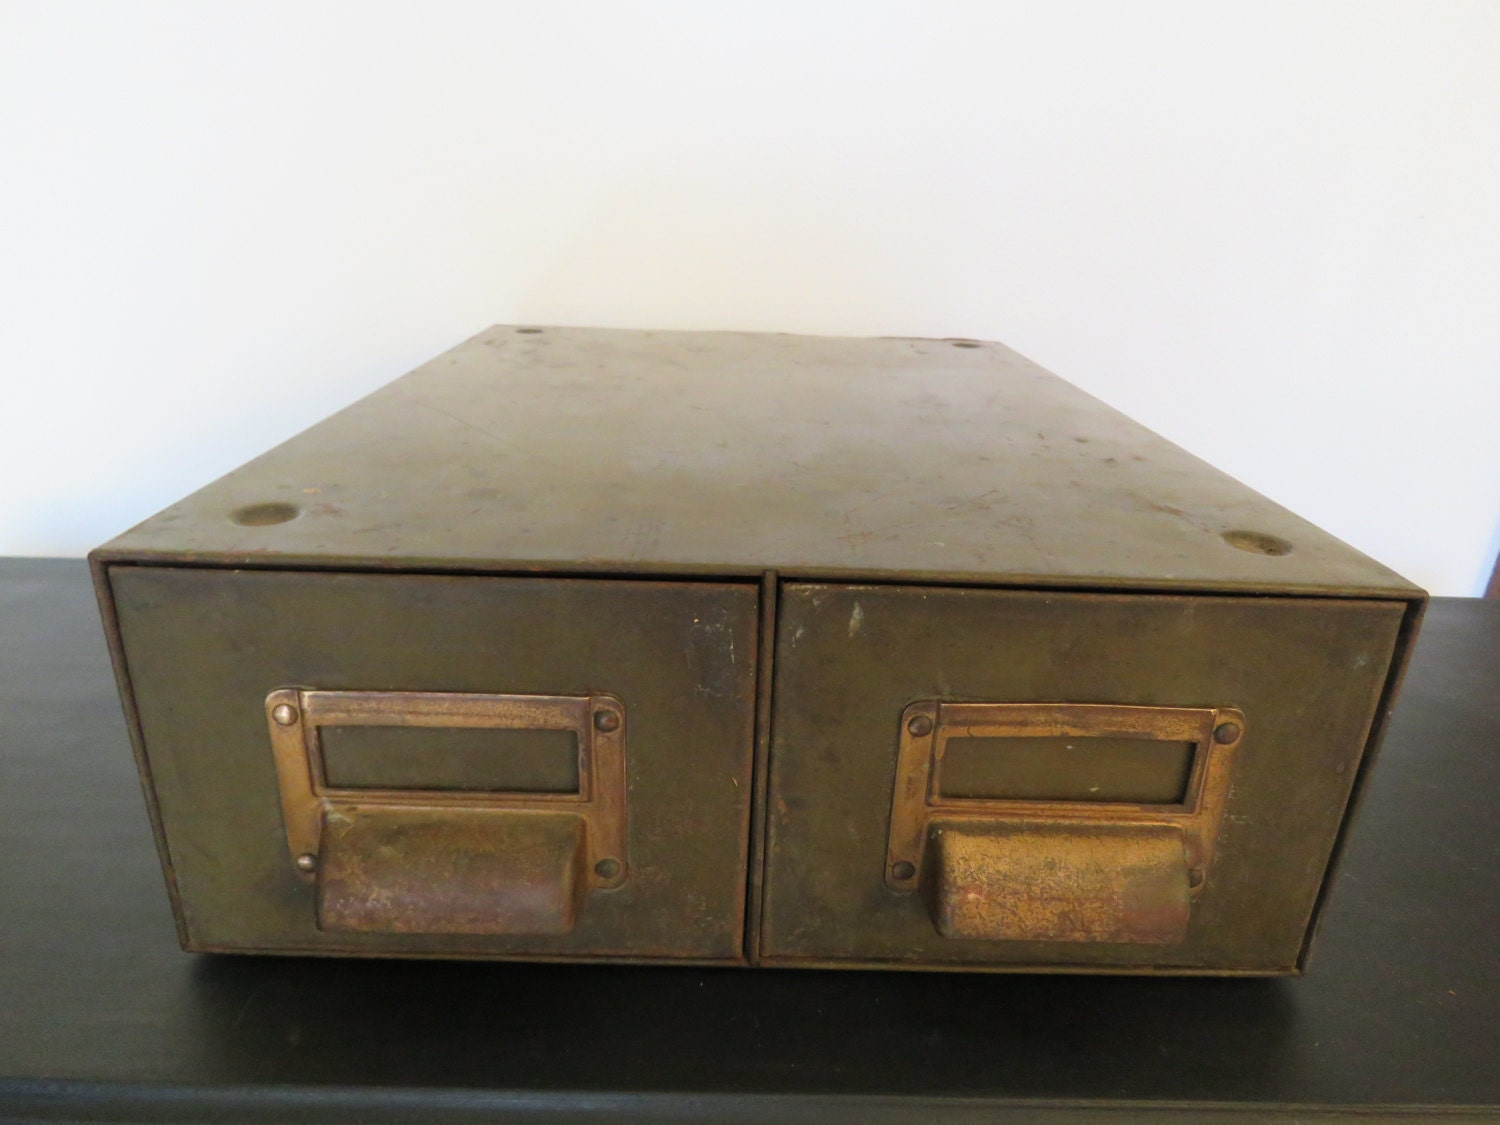 Art Metal Industrial File Box 2 Drawer Olive Army Green